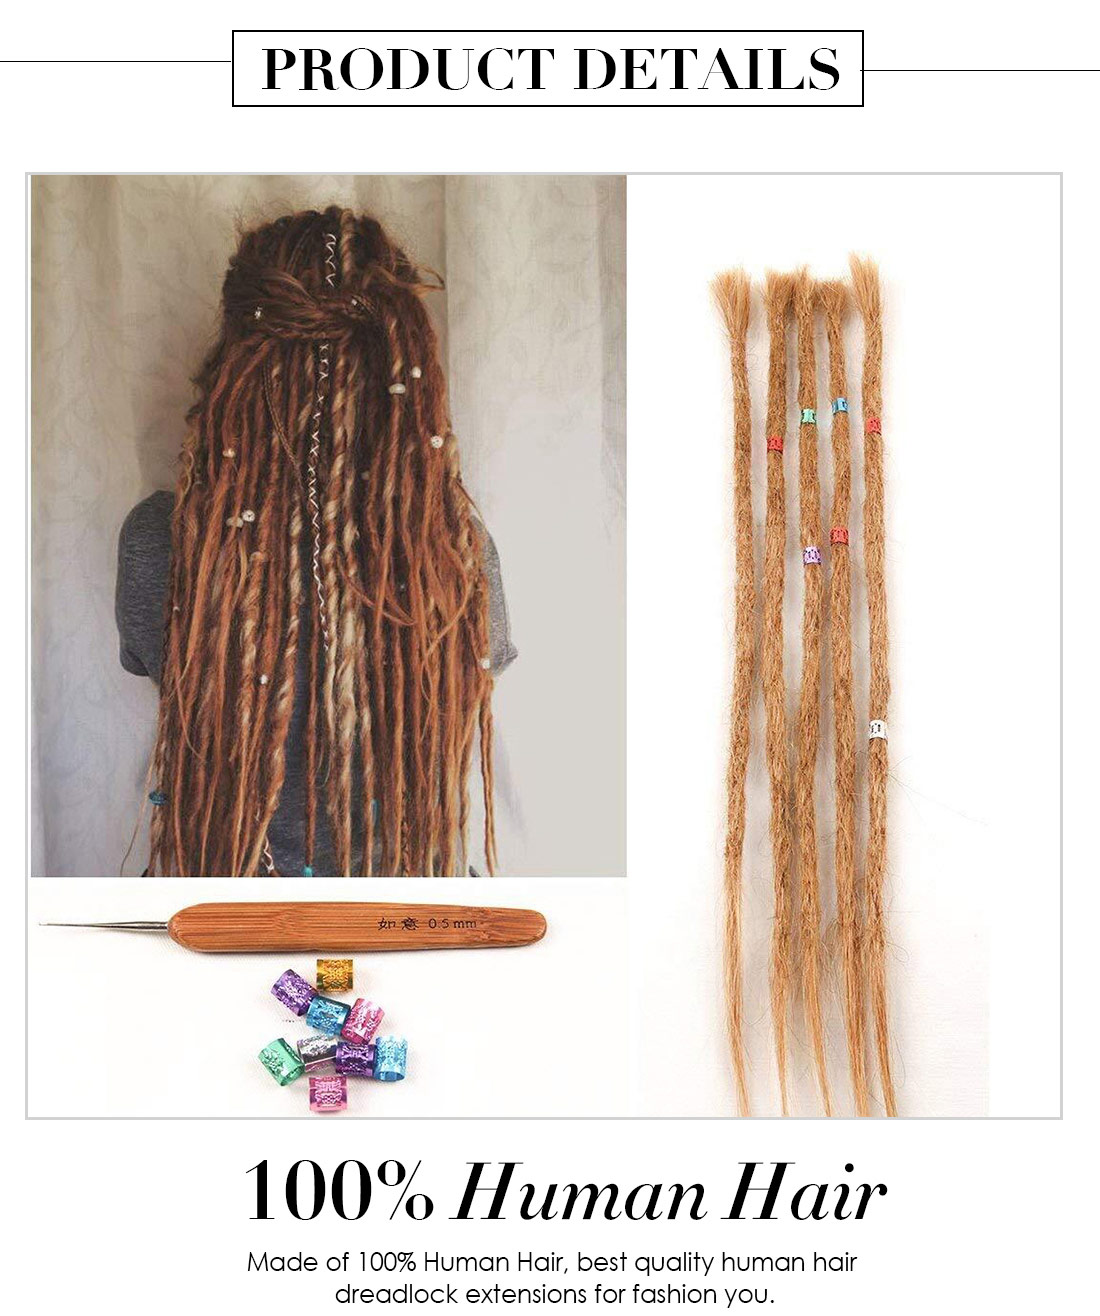 Dsoar Dyed Dreads 27 Light Brown Human Hair Dreadlock Extensions